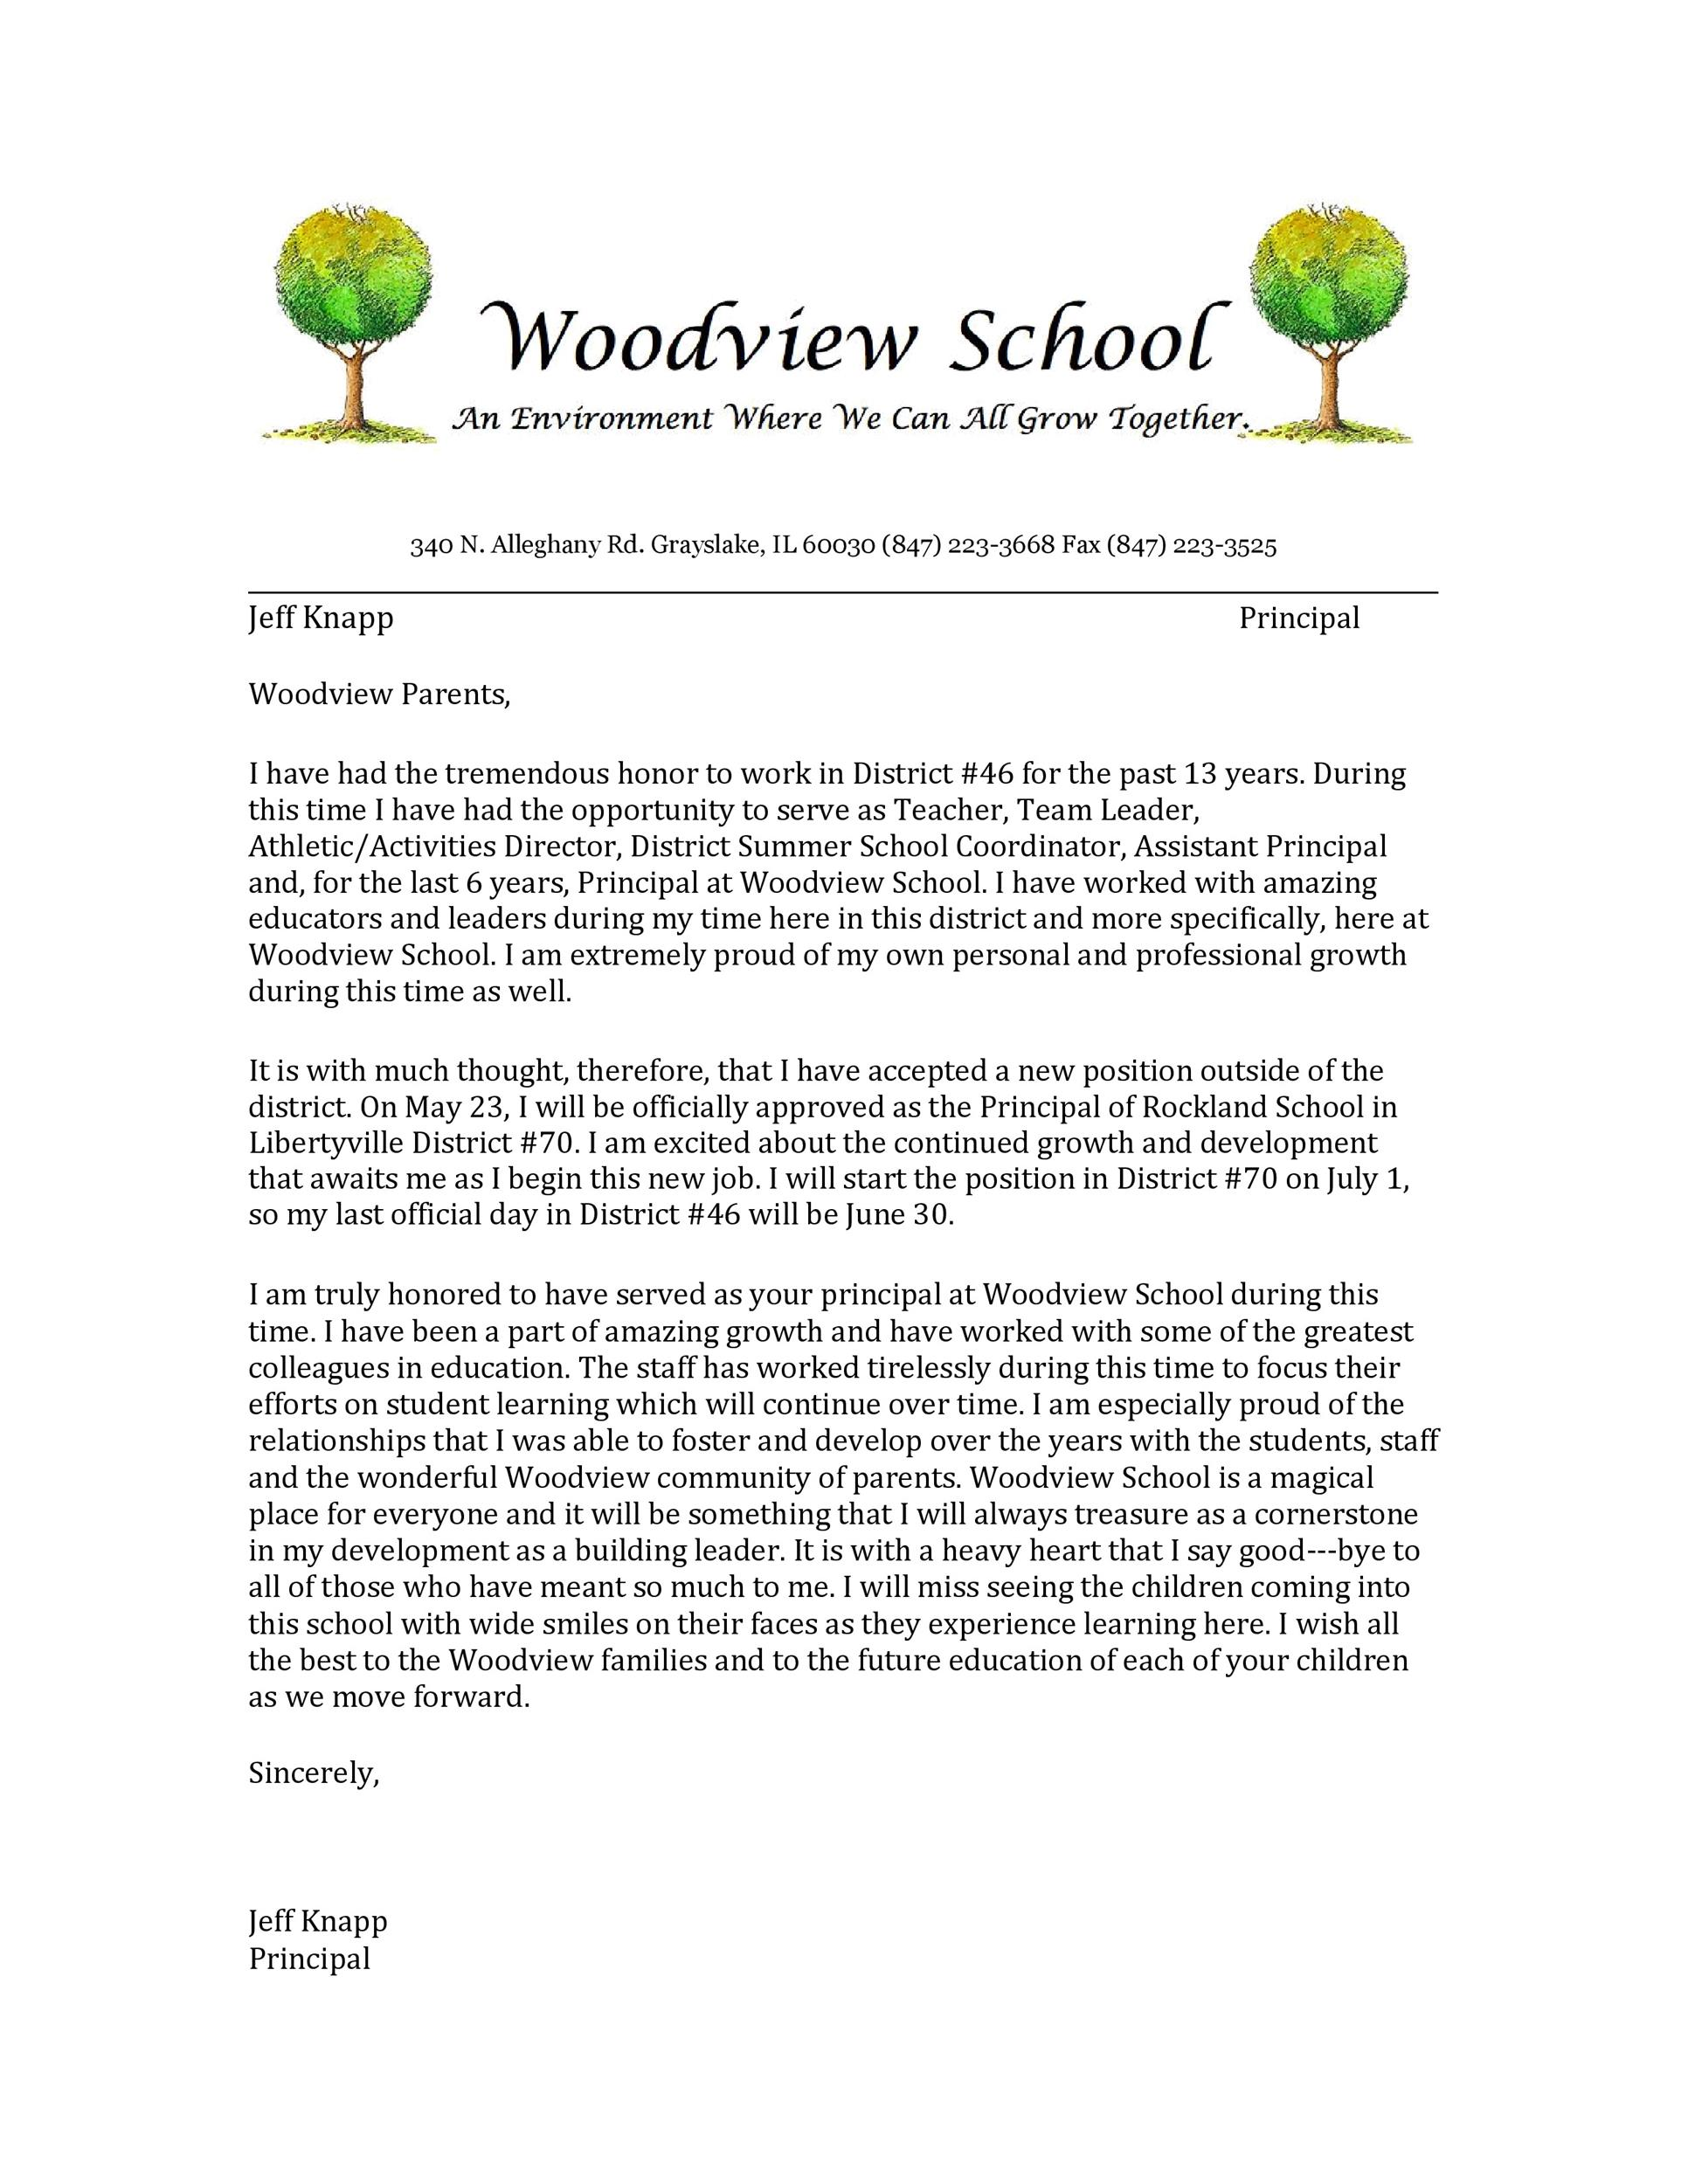 Free teacher resignation letter 47